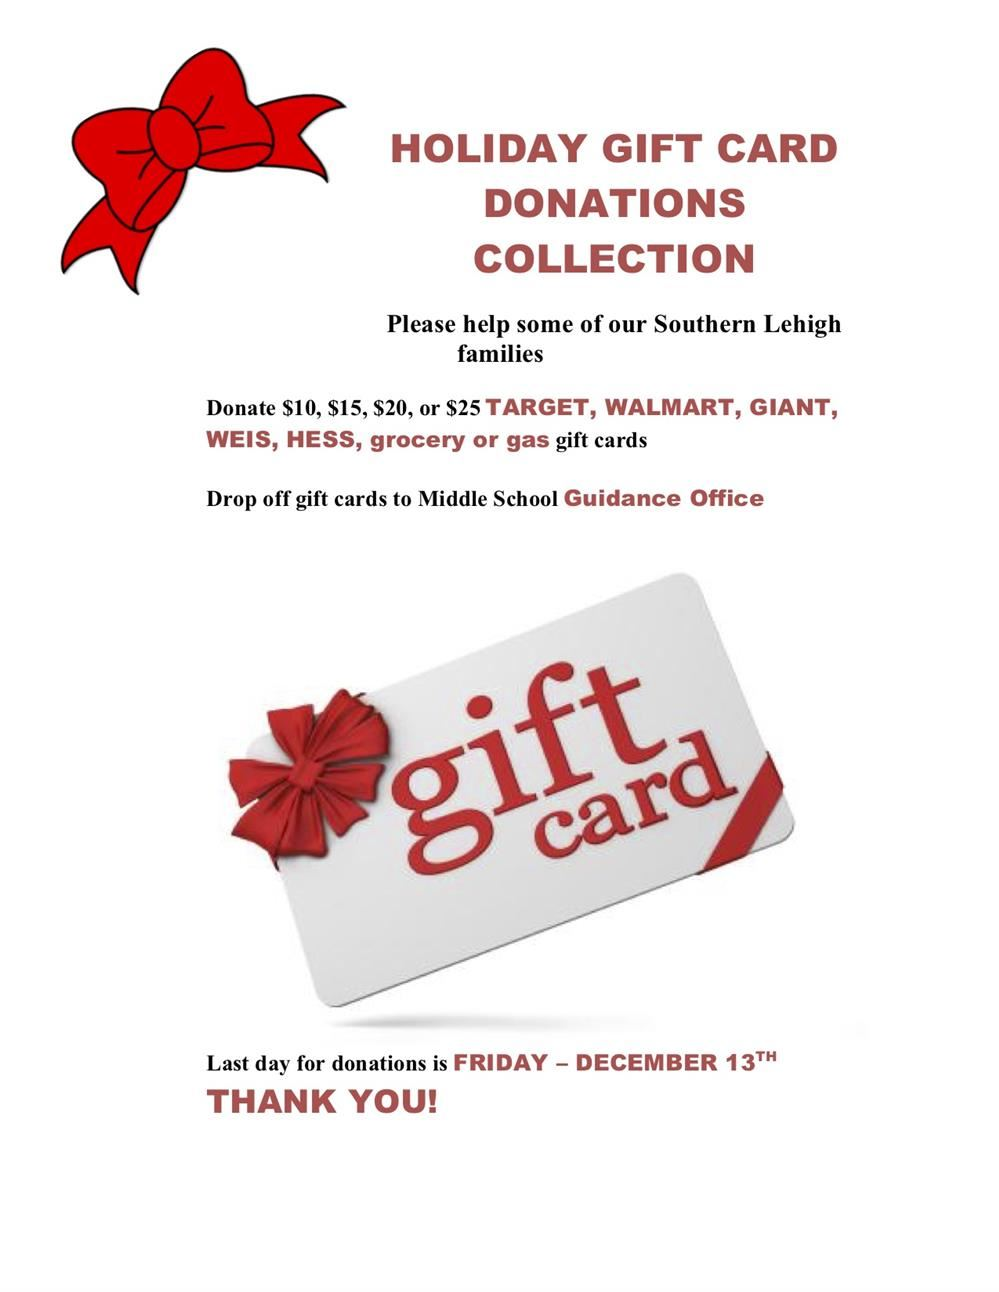 HOLIDAY GIFT CARD DONATIONS